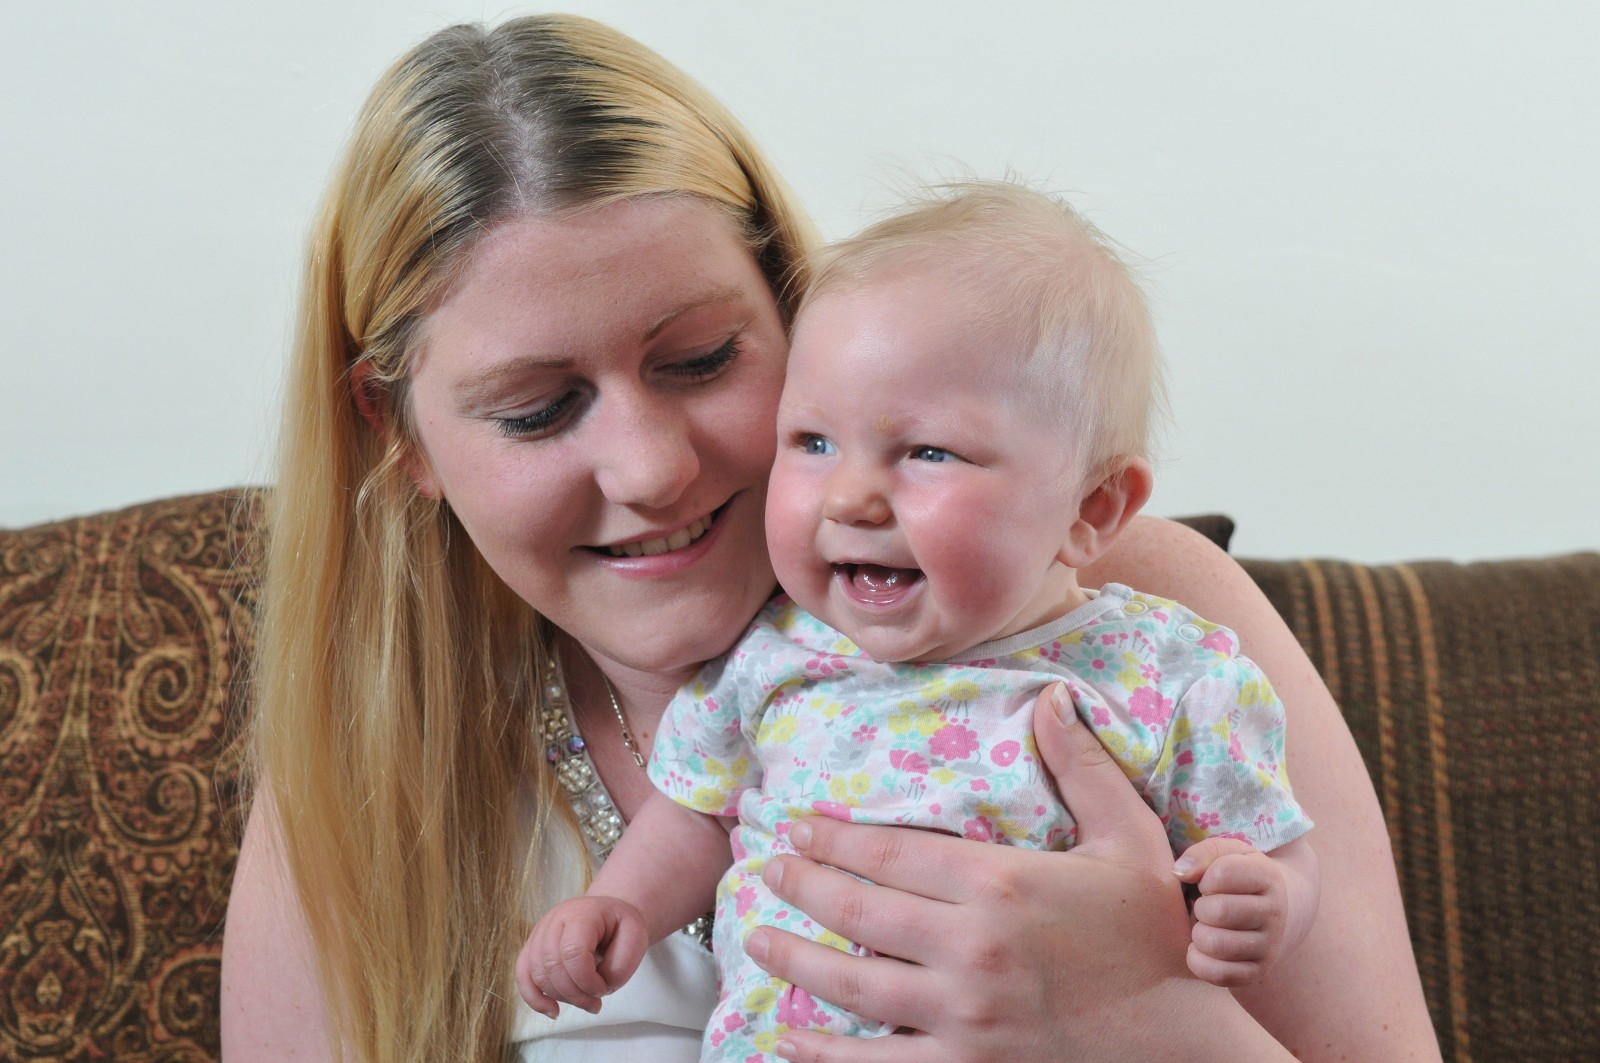 'Am I going to die Mummy?' The painful question this mum knows she'll have to answer one day